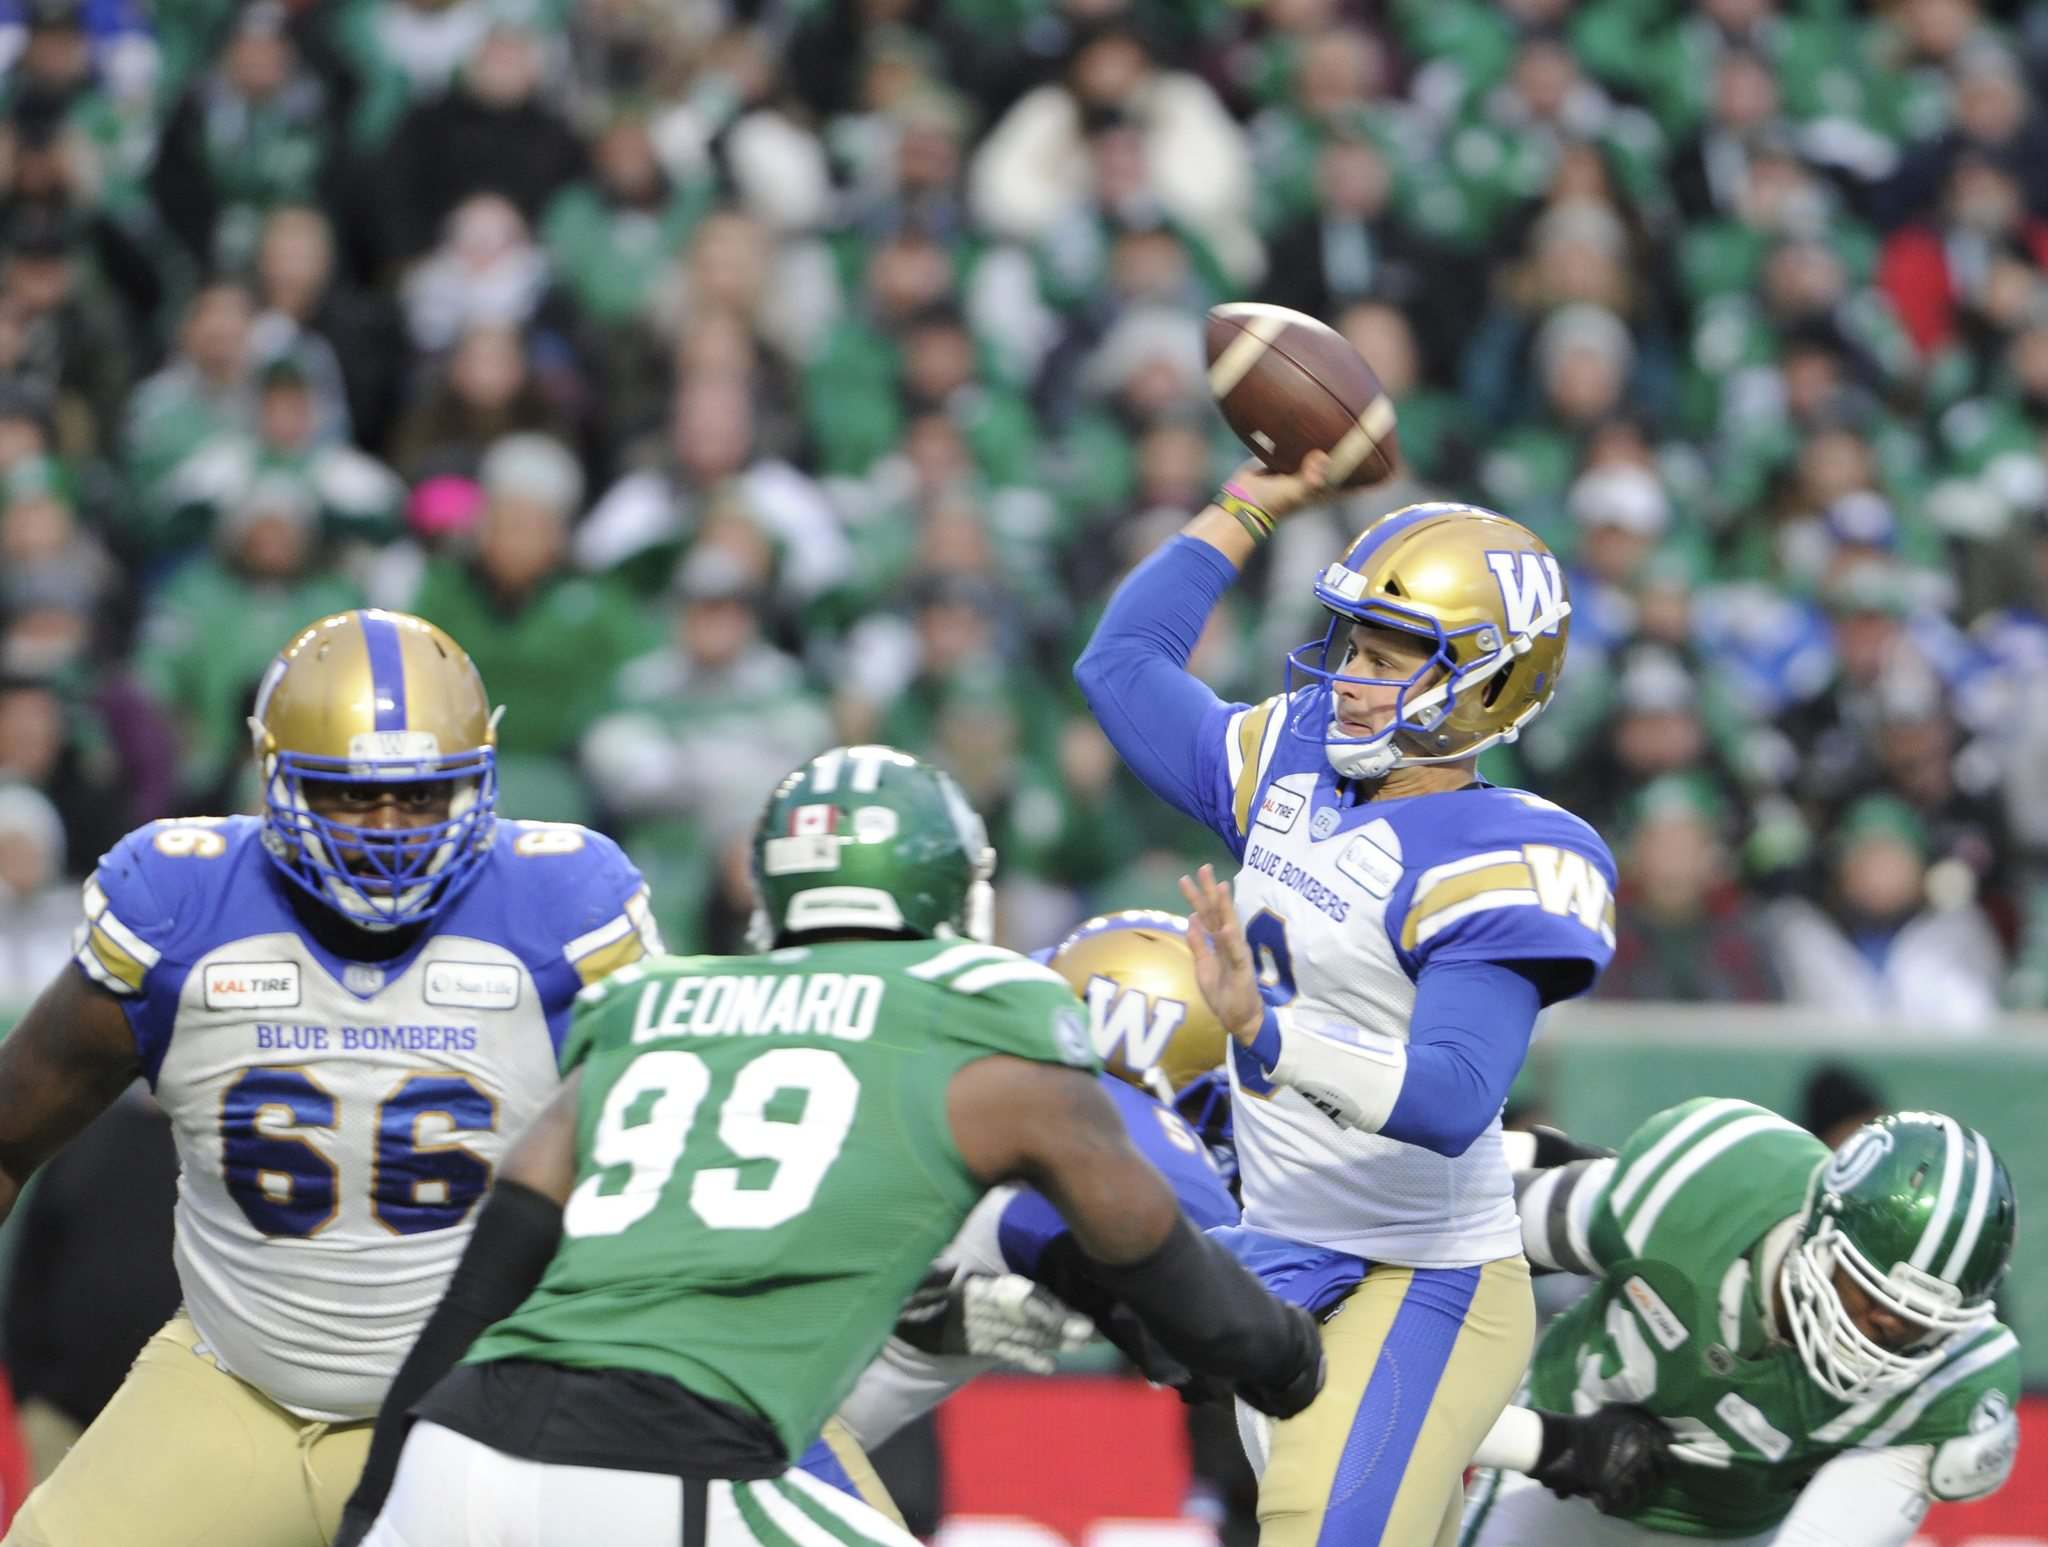 Winnipeg Blue Bombers QB Zach Collaros is looking to cap his comeback with a Cinderella finish in the Grey Cup. (Mark Taylor / The Canadian Press files)